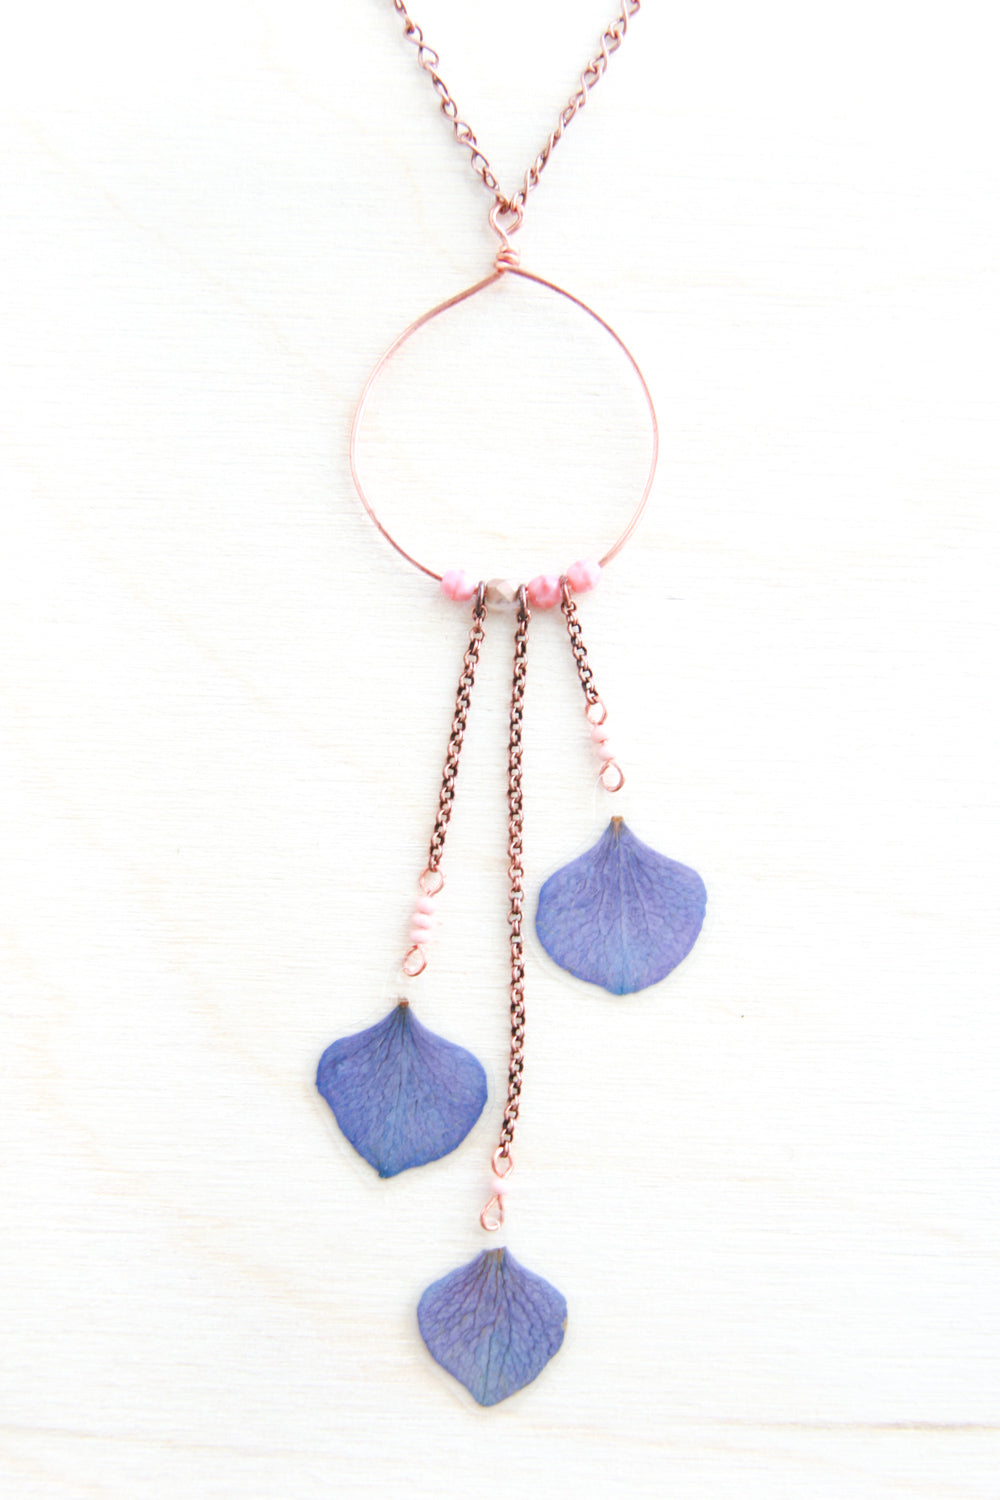 Purple Hydrangea Pressed Flower Necklace with Copper Hoop & Glass Beads